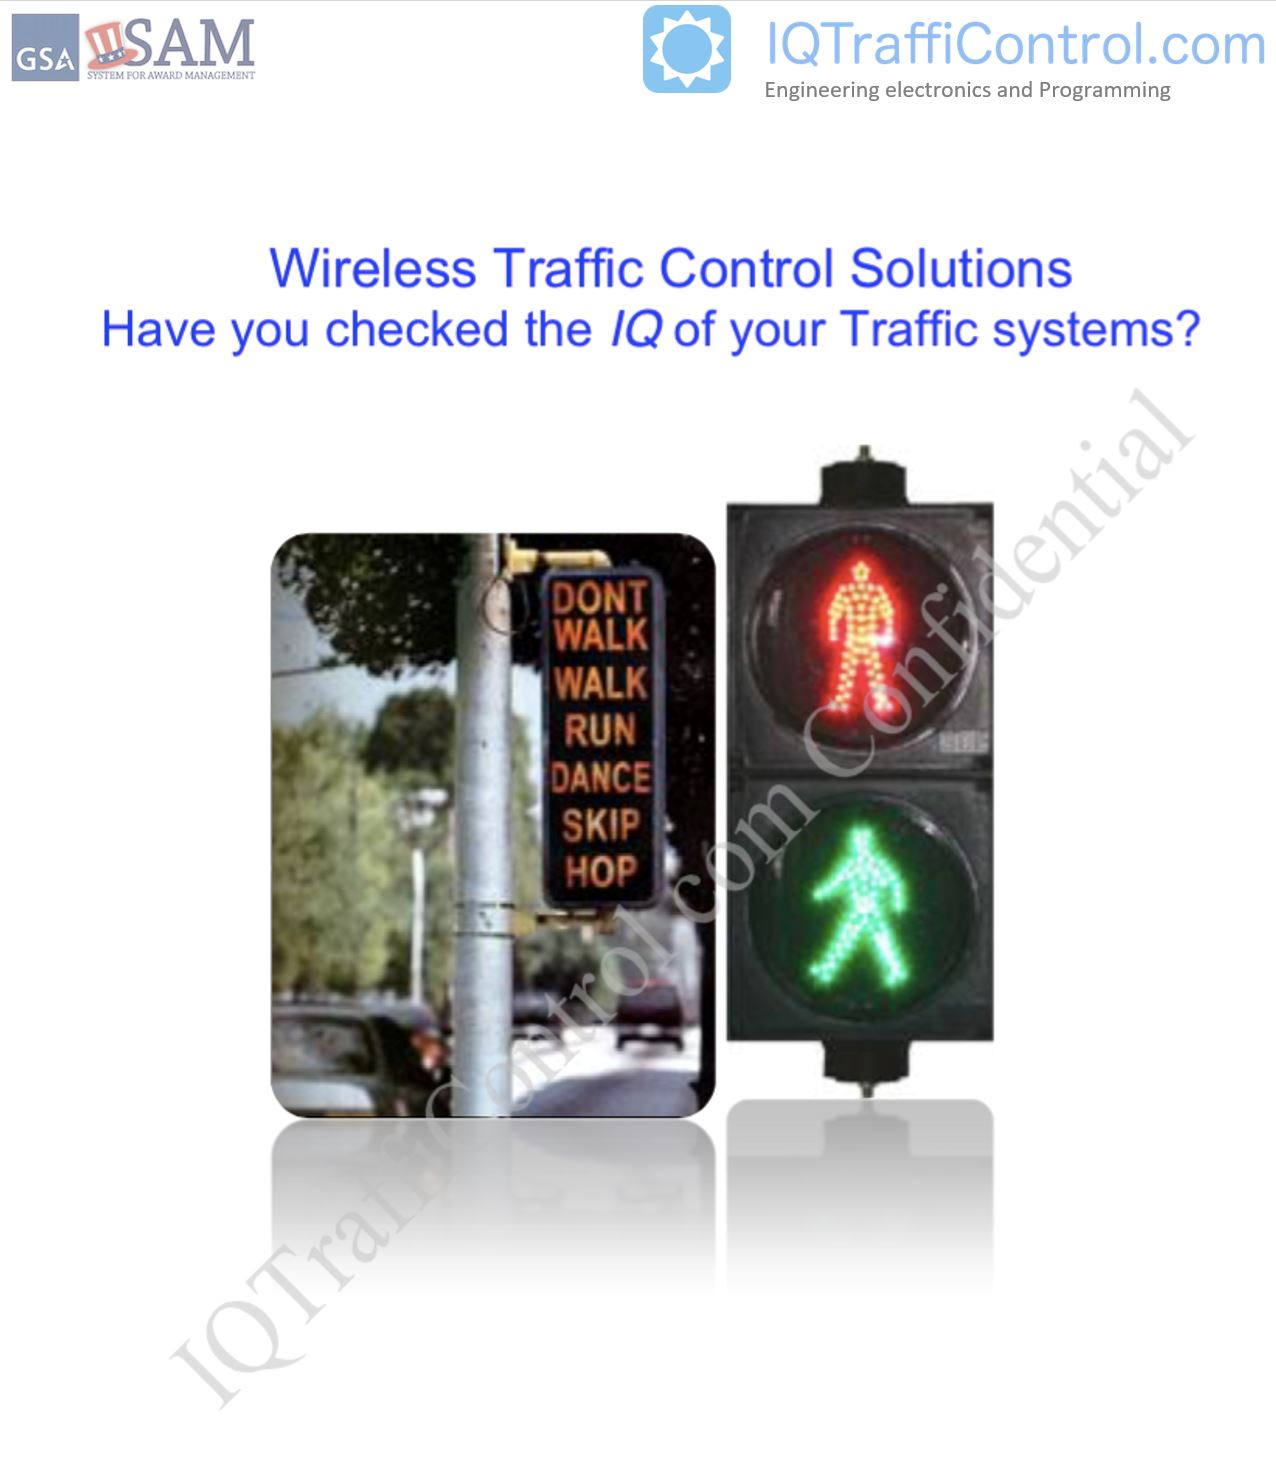 Rail, Level Crossing, , LED Level Crossing Signals Modules, Highway Crossing Equipment Highway Crossing Gate Mechanism.